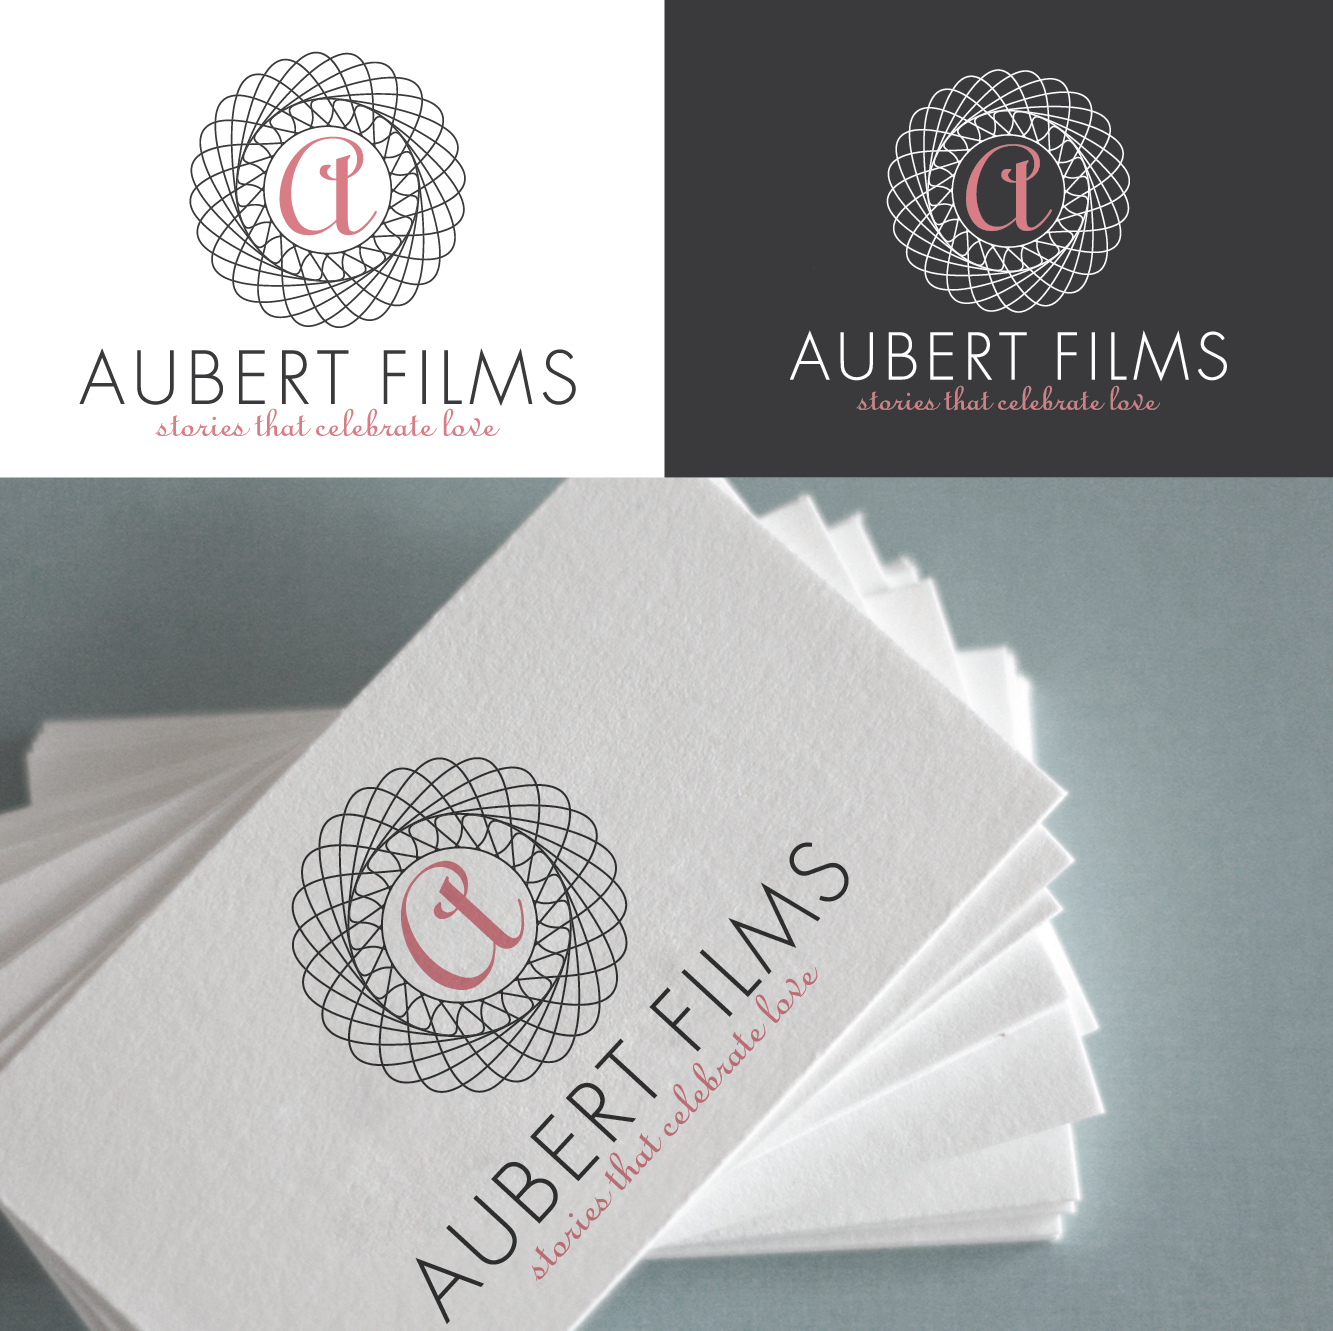 New logo wanted for Aubert Films